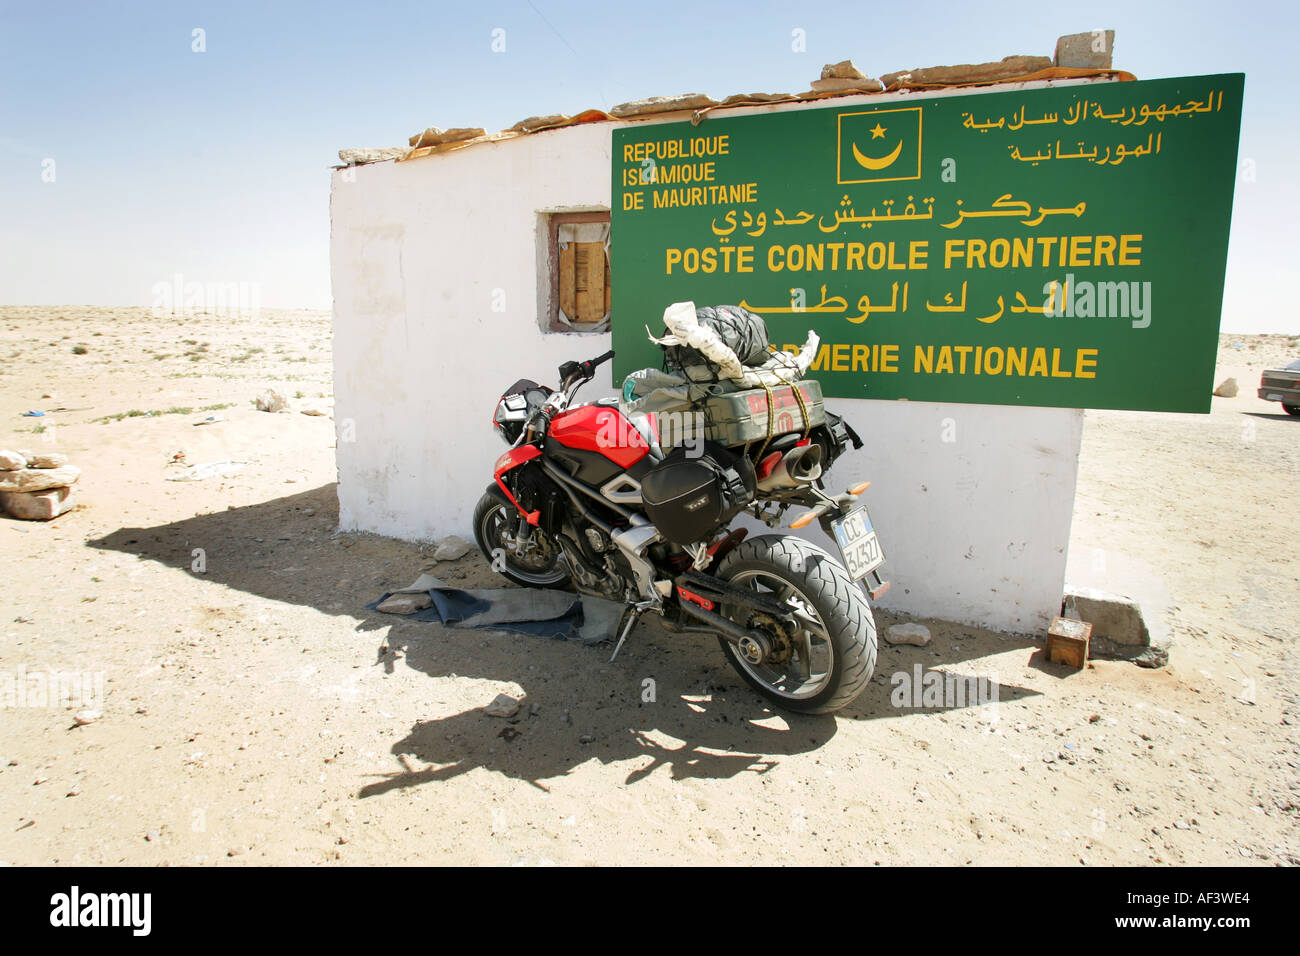 A benelli TNT 1130cc motorcycle crossing the sahara desert in Morocco, mauritania and senegal - Stock Image